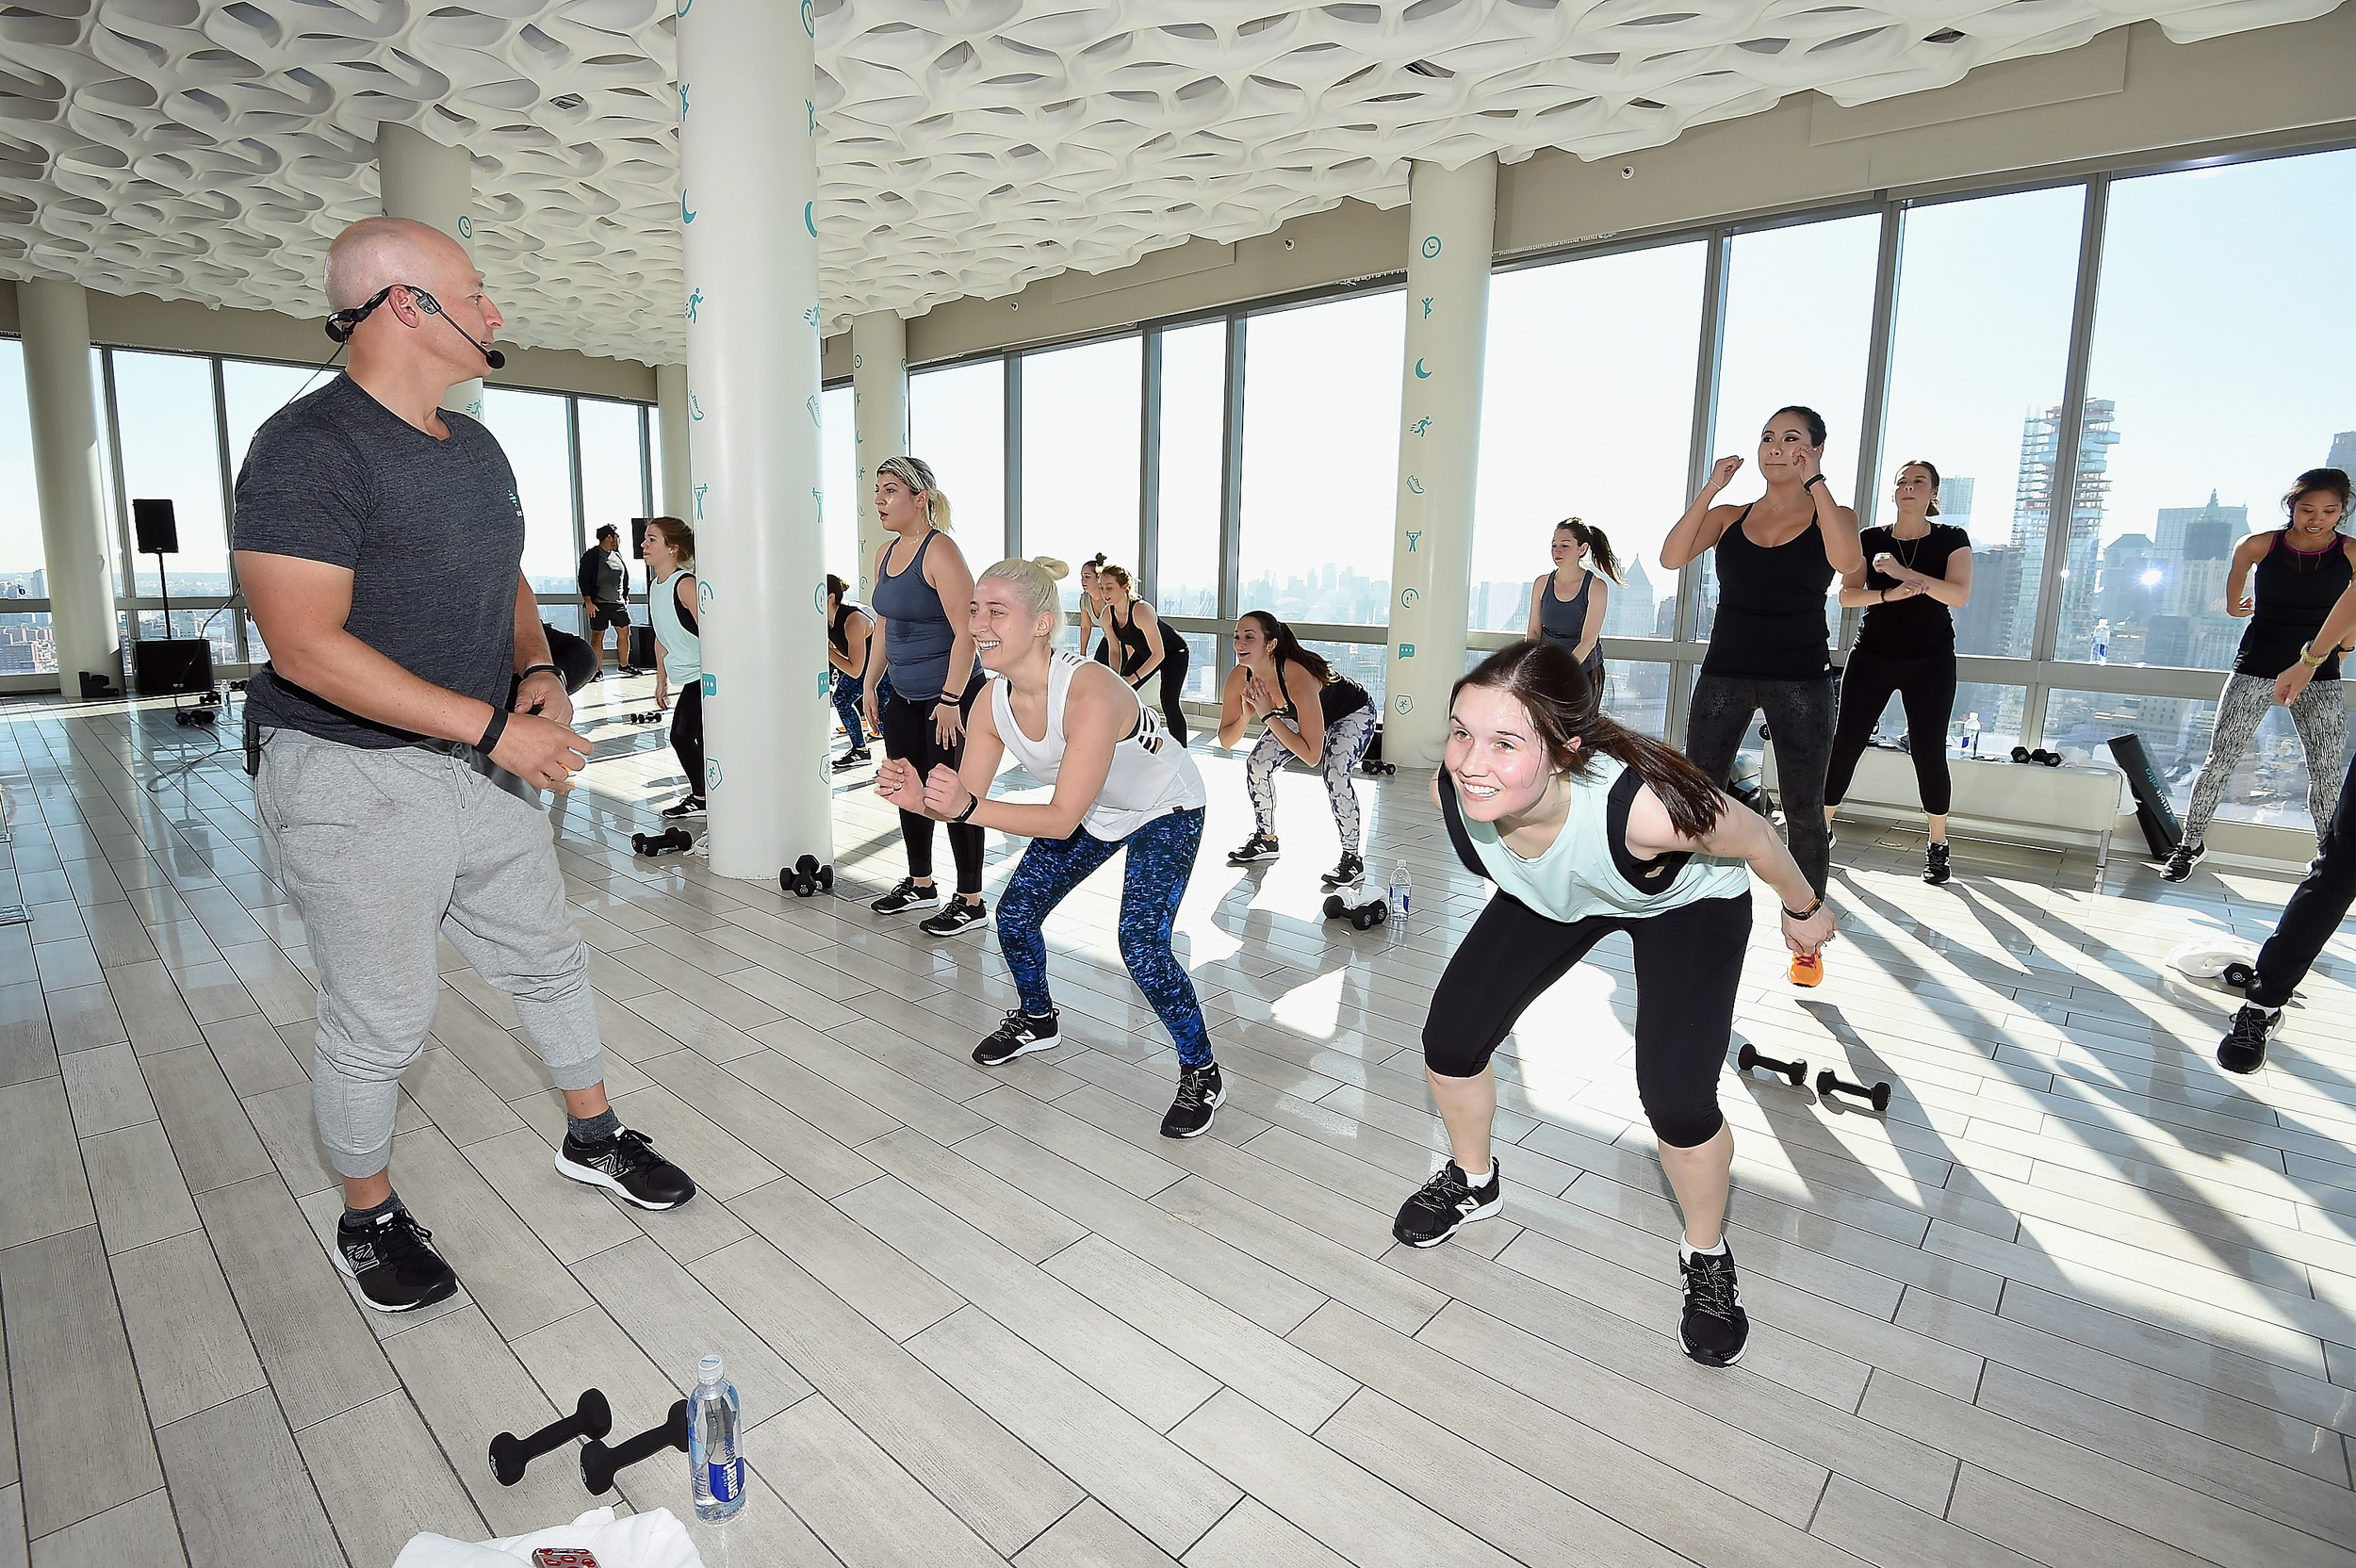 Celebrity fitness trainer Harley Pasternak was on hand to lead a workout where all the participants were using the new Fitbit Alta.